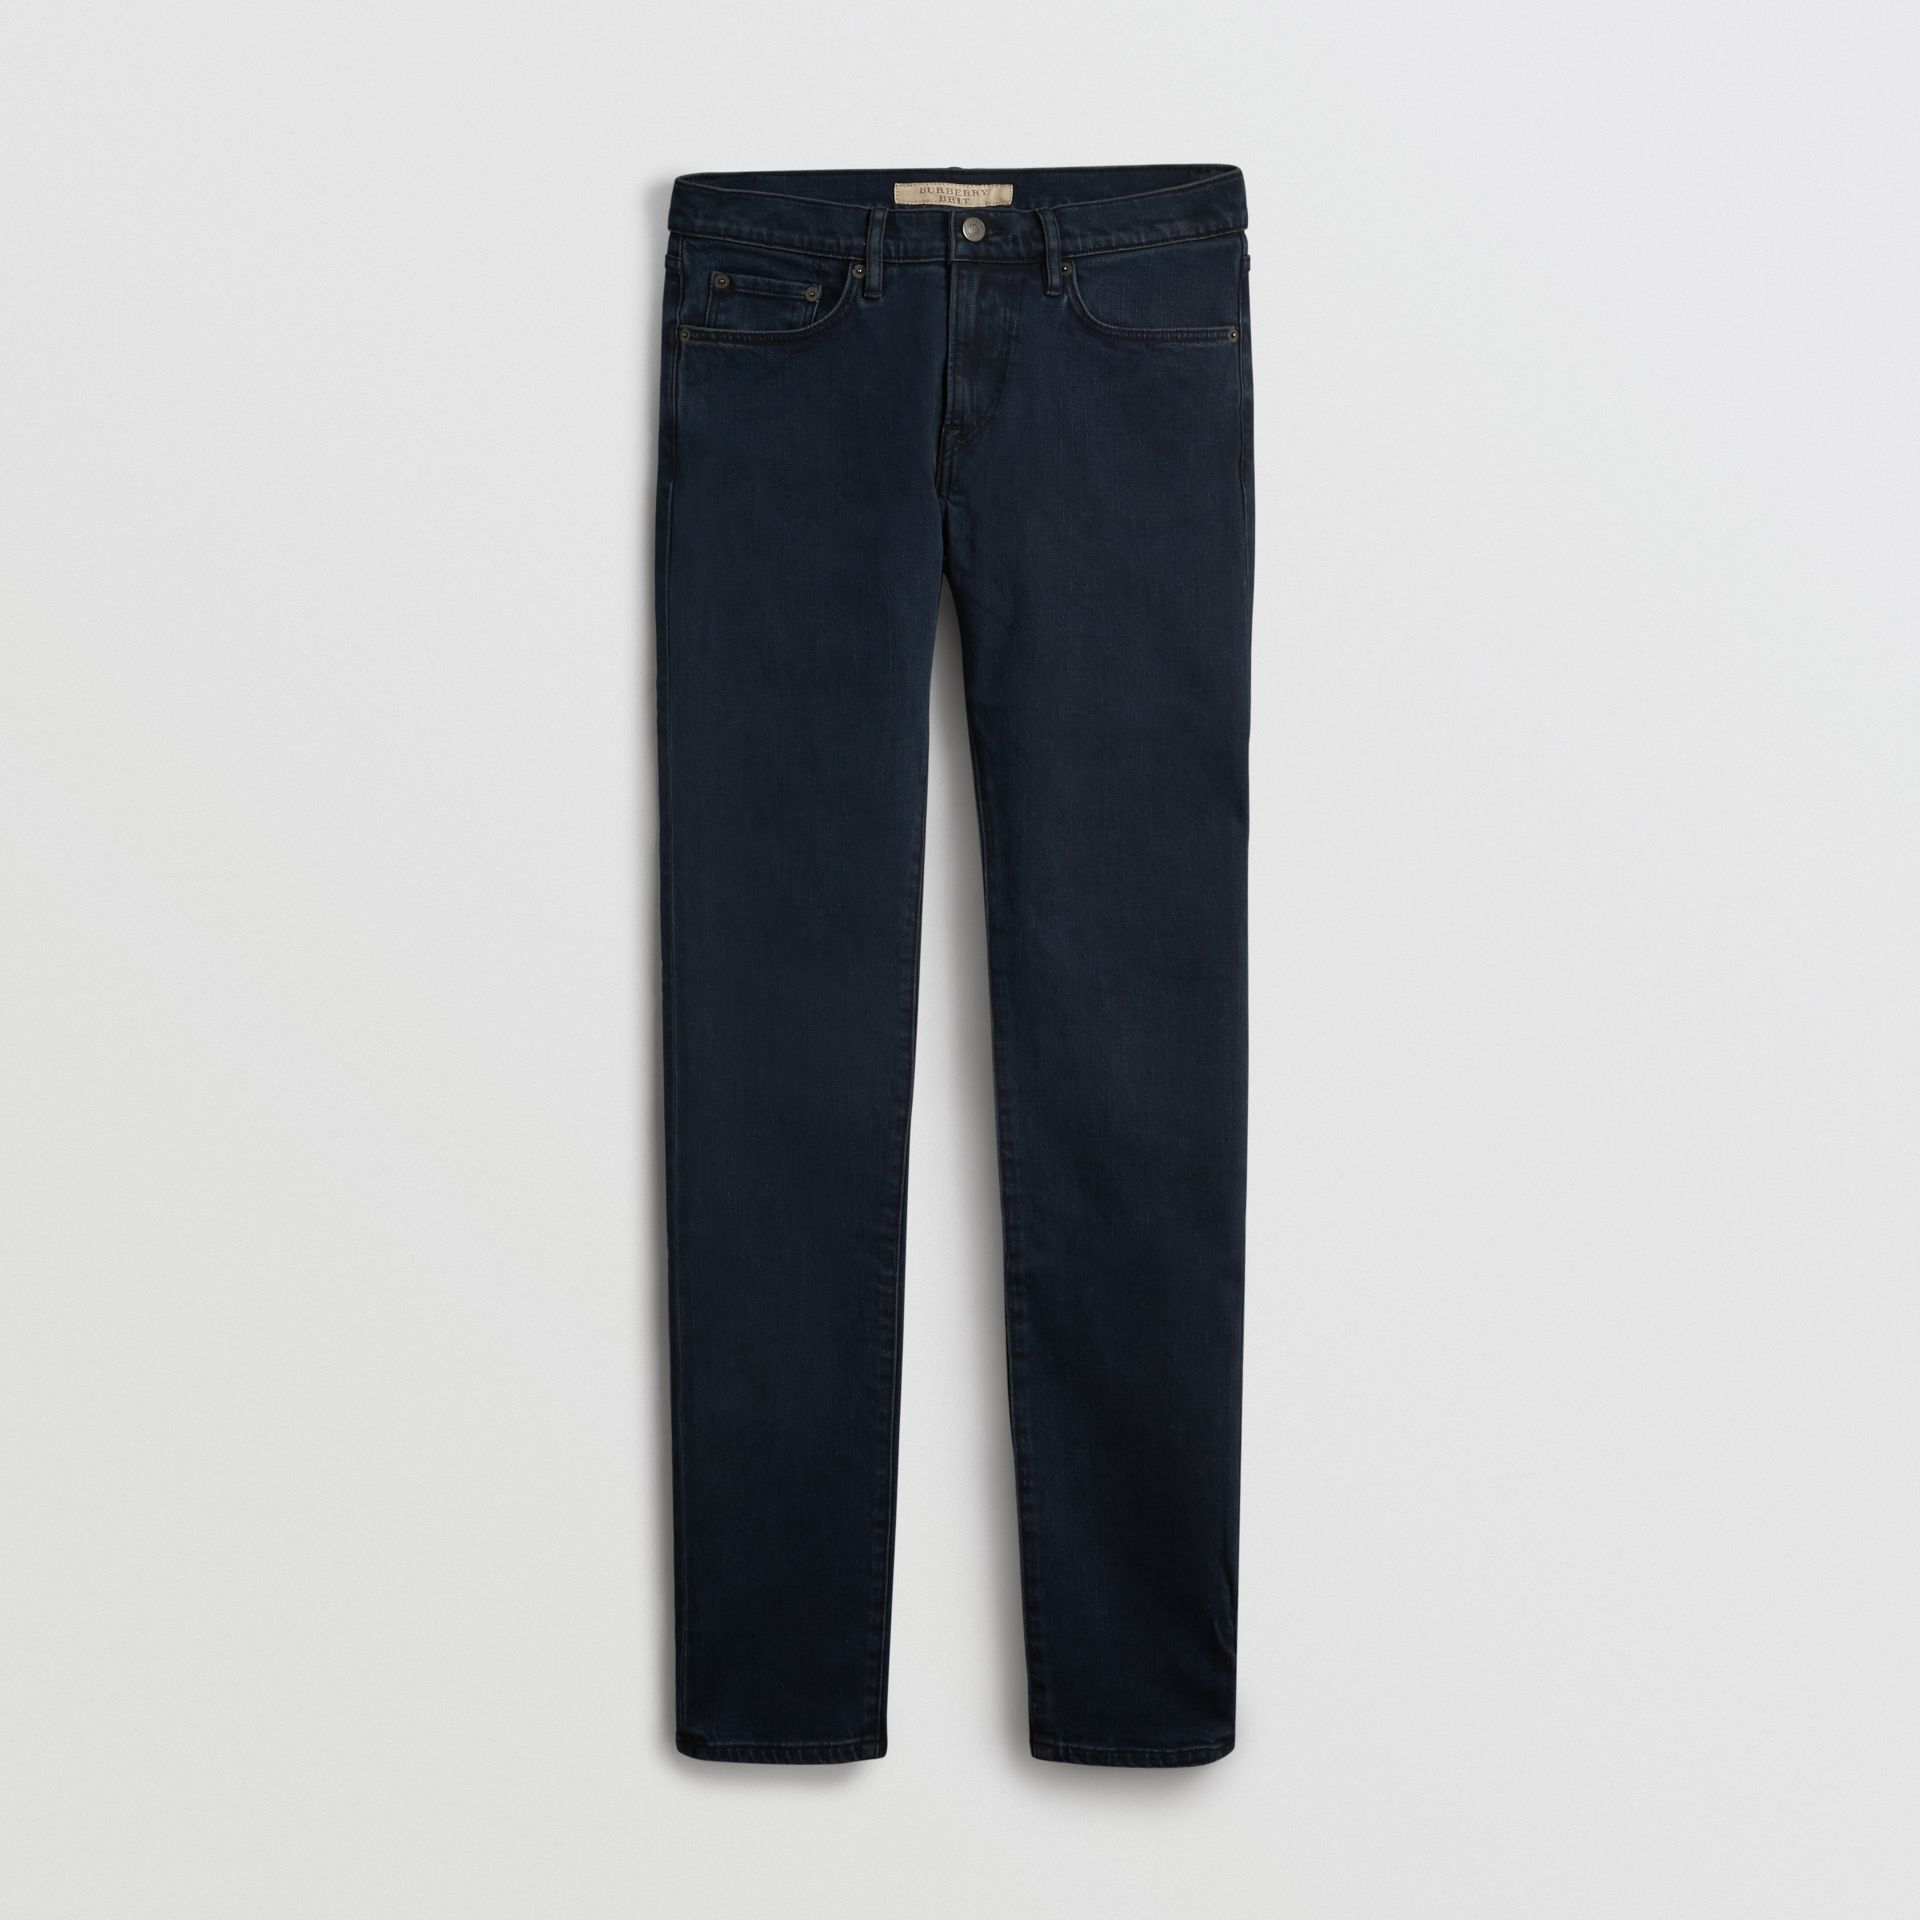 Jean de coupe slim en denim extensible (Indigo Sombre) - Homme | Burberry Canada - photo de la galerie 3